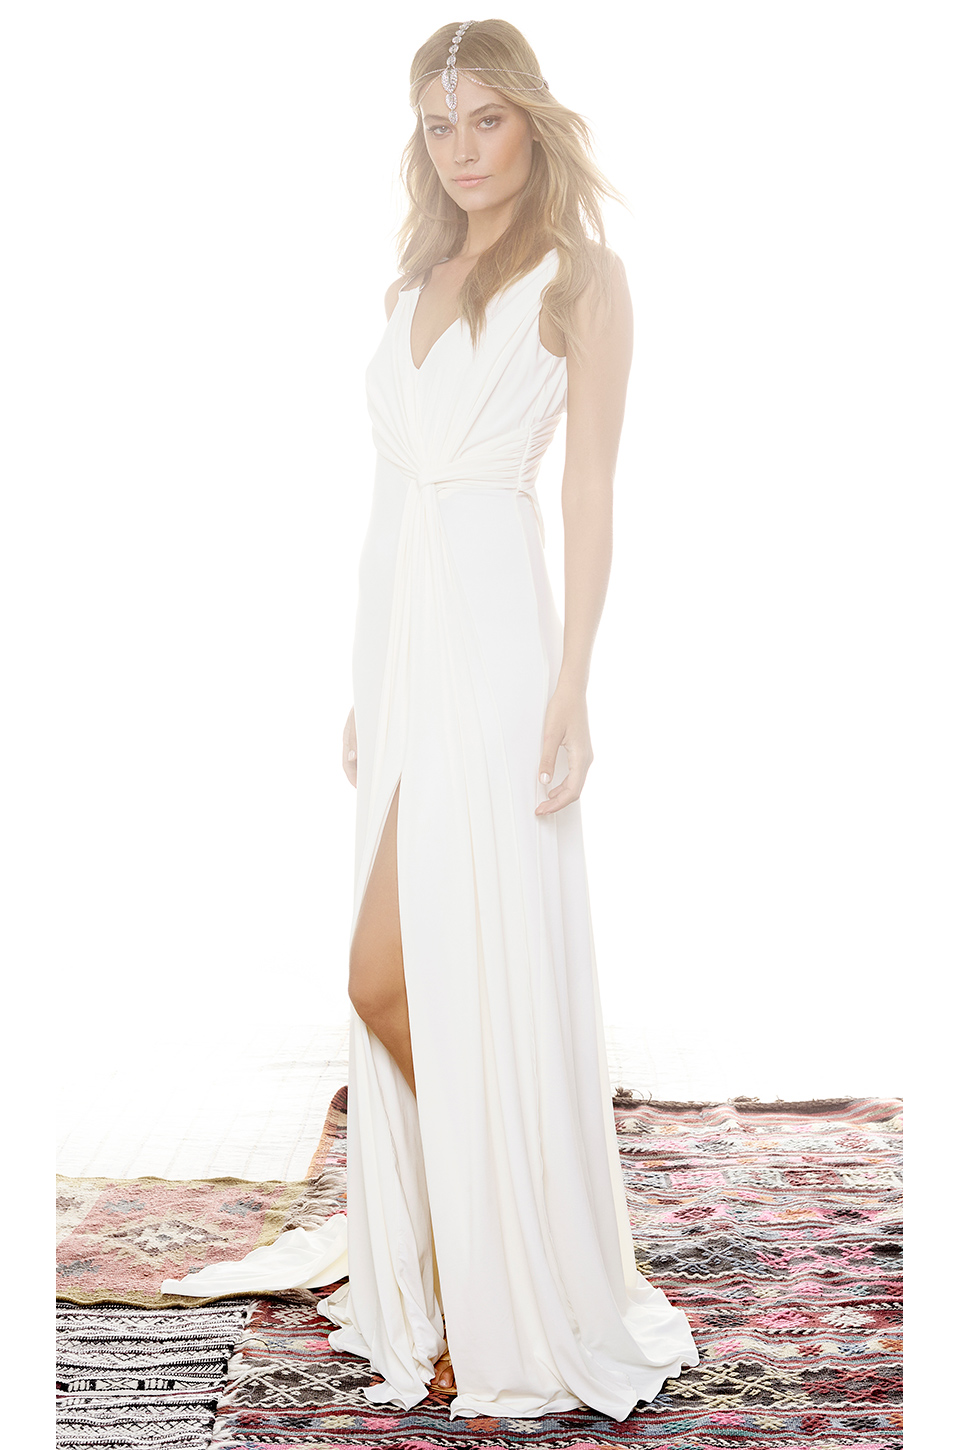 REVOLVE Clothing 2015 Wedding Gown Collection 10